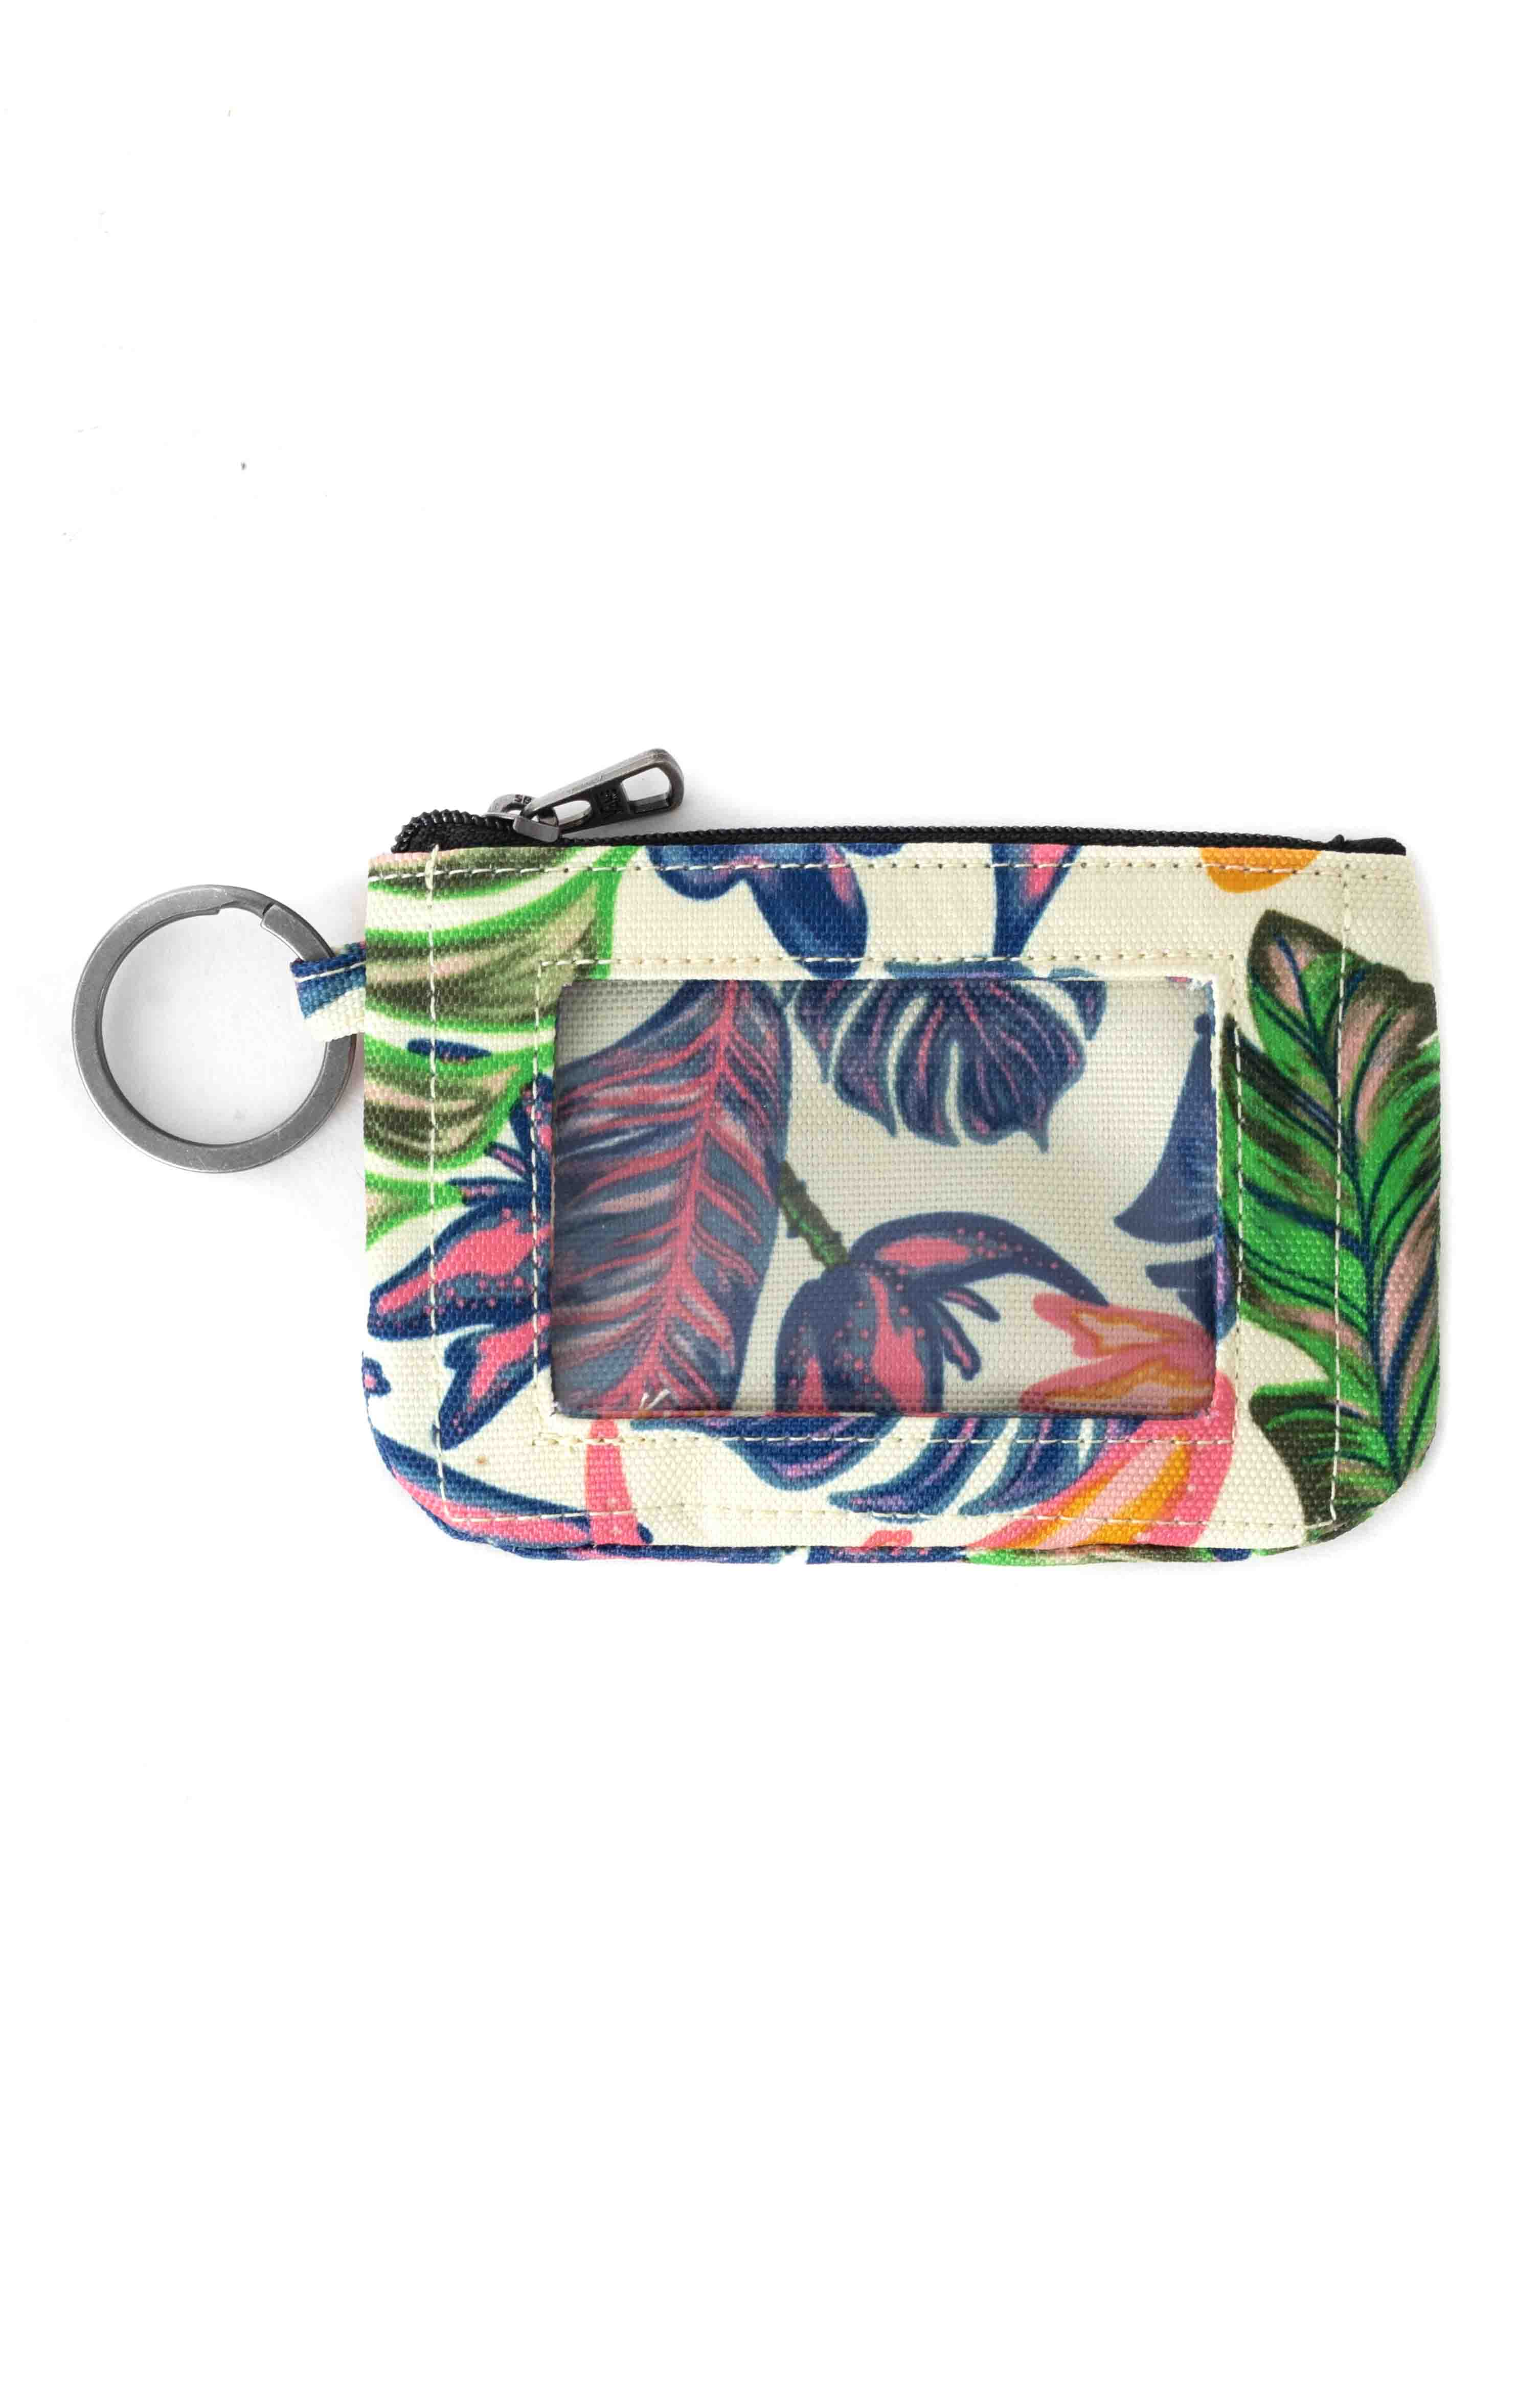 Wallet Keychain - Tropical Mellow Yellow 2